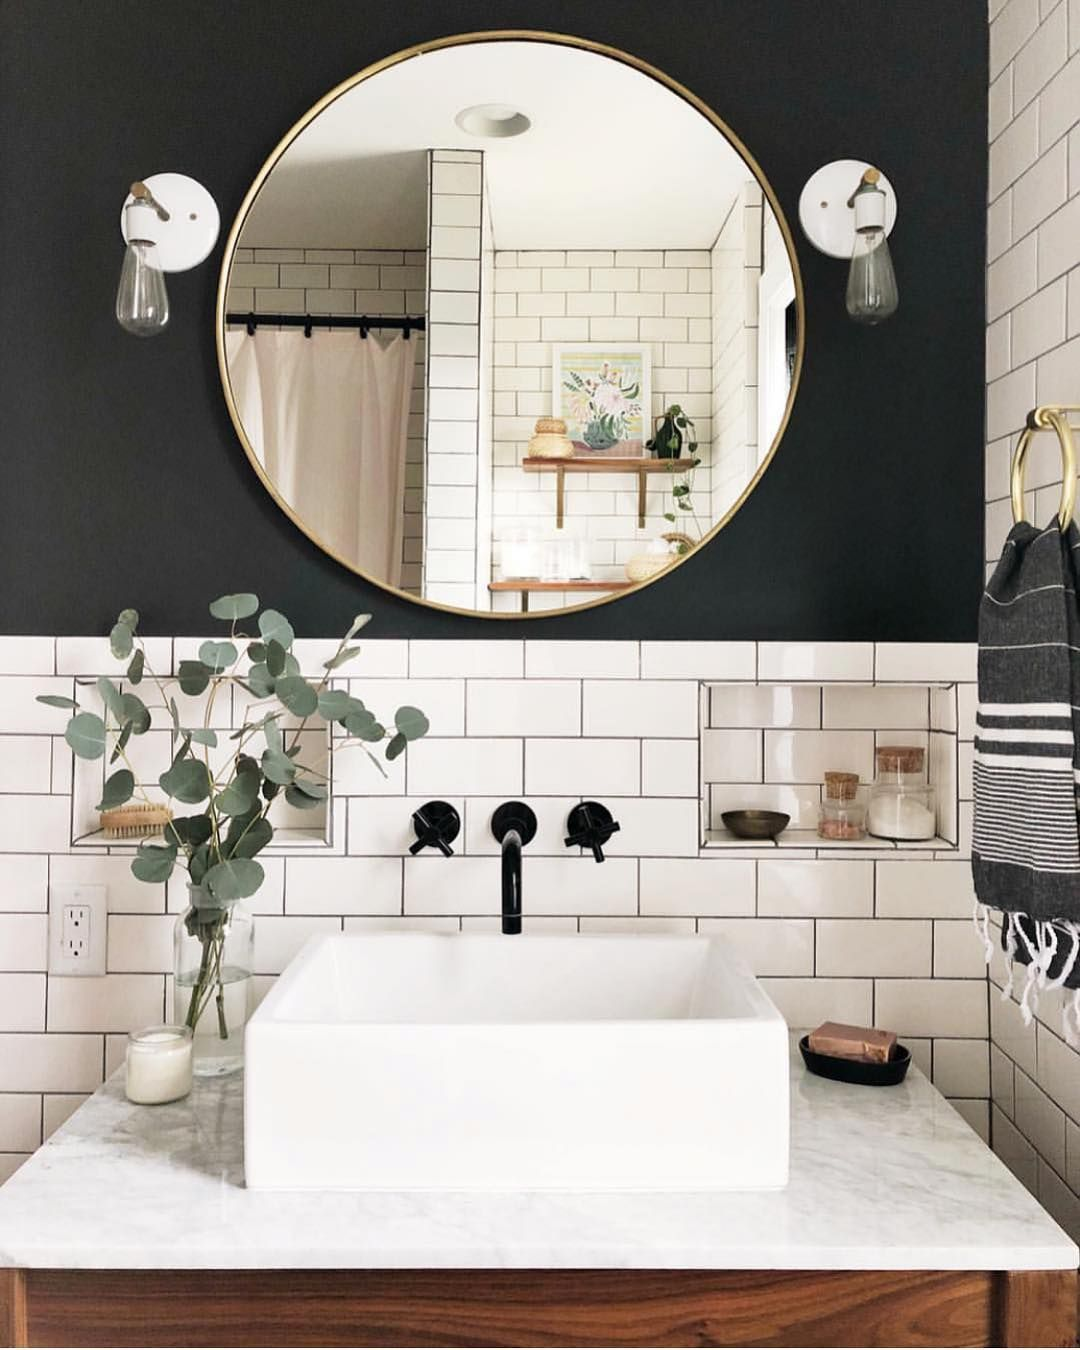 "Mid Century•Boho•Farmhouse on Instagram: ""Bathroom perfection. Love the black and white"